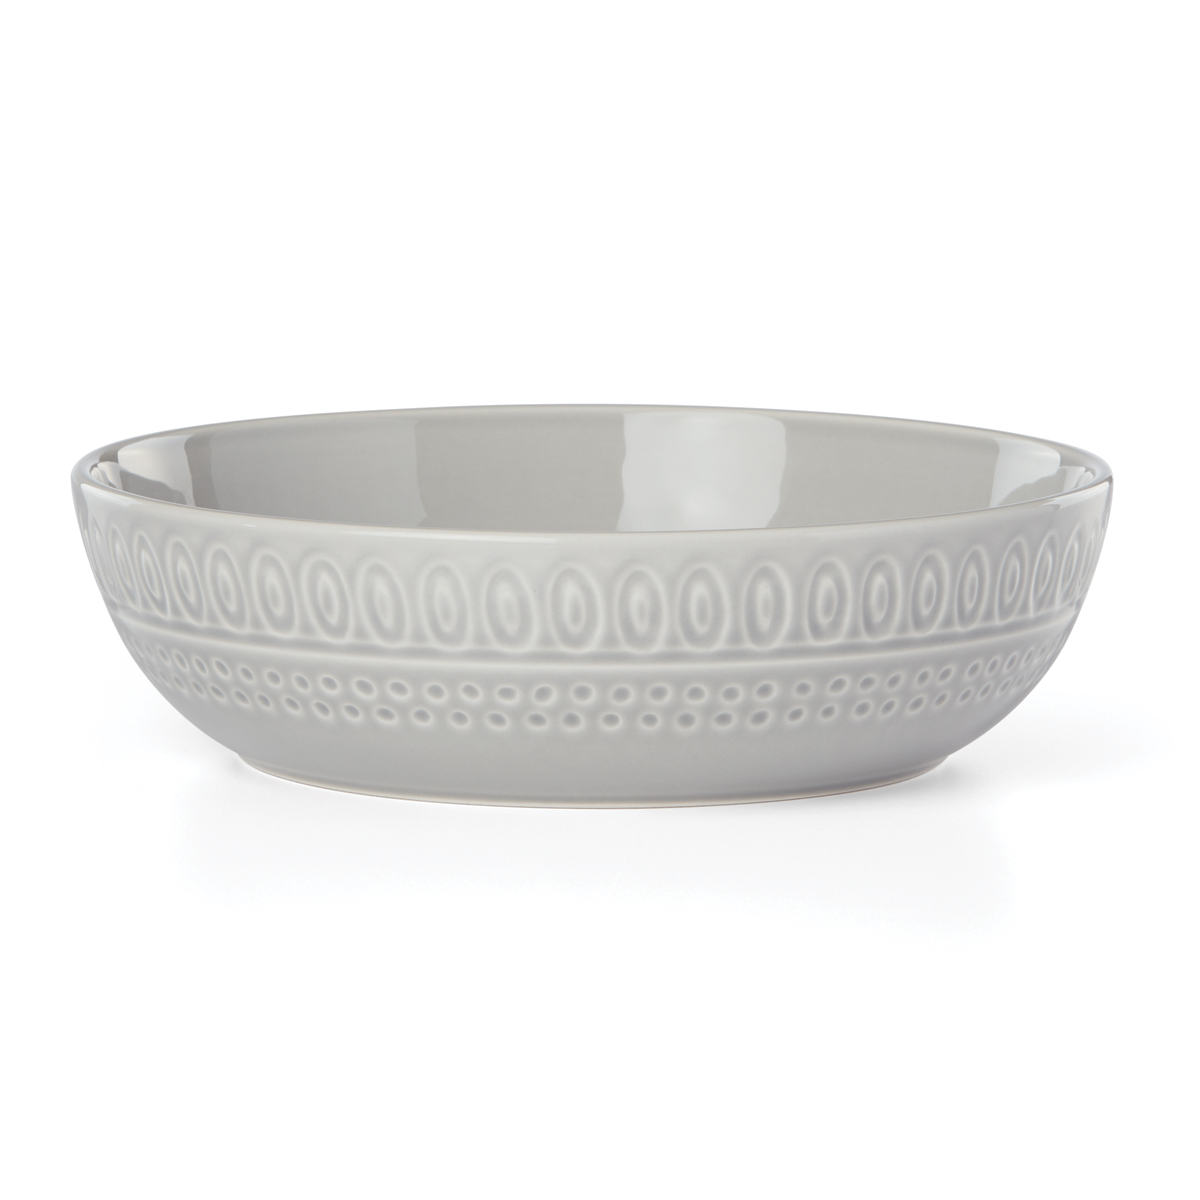 Kate Spade China by Lenox, Willow Dr Grey Dinner Bowl